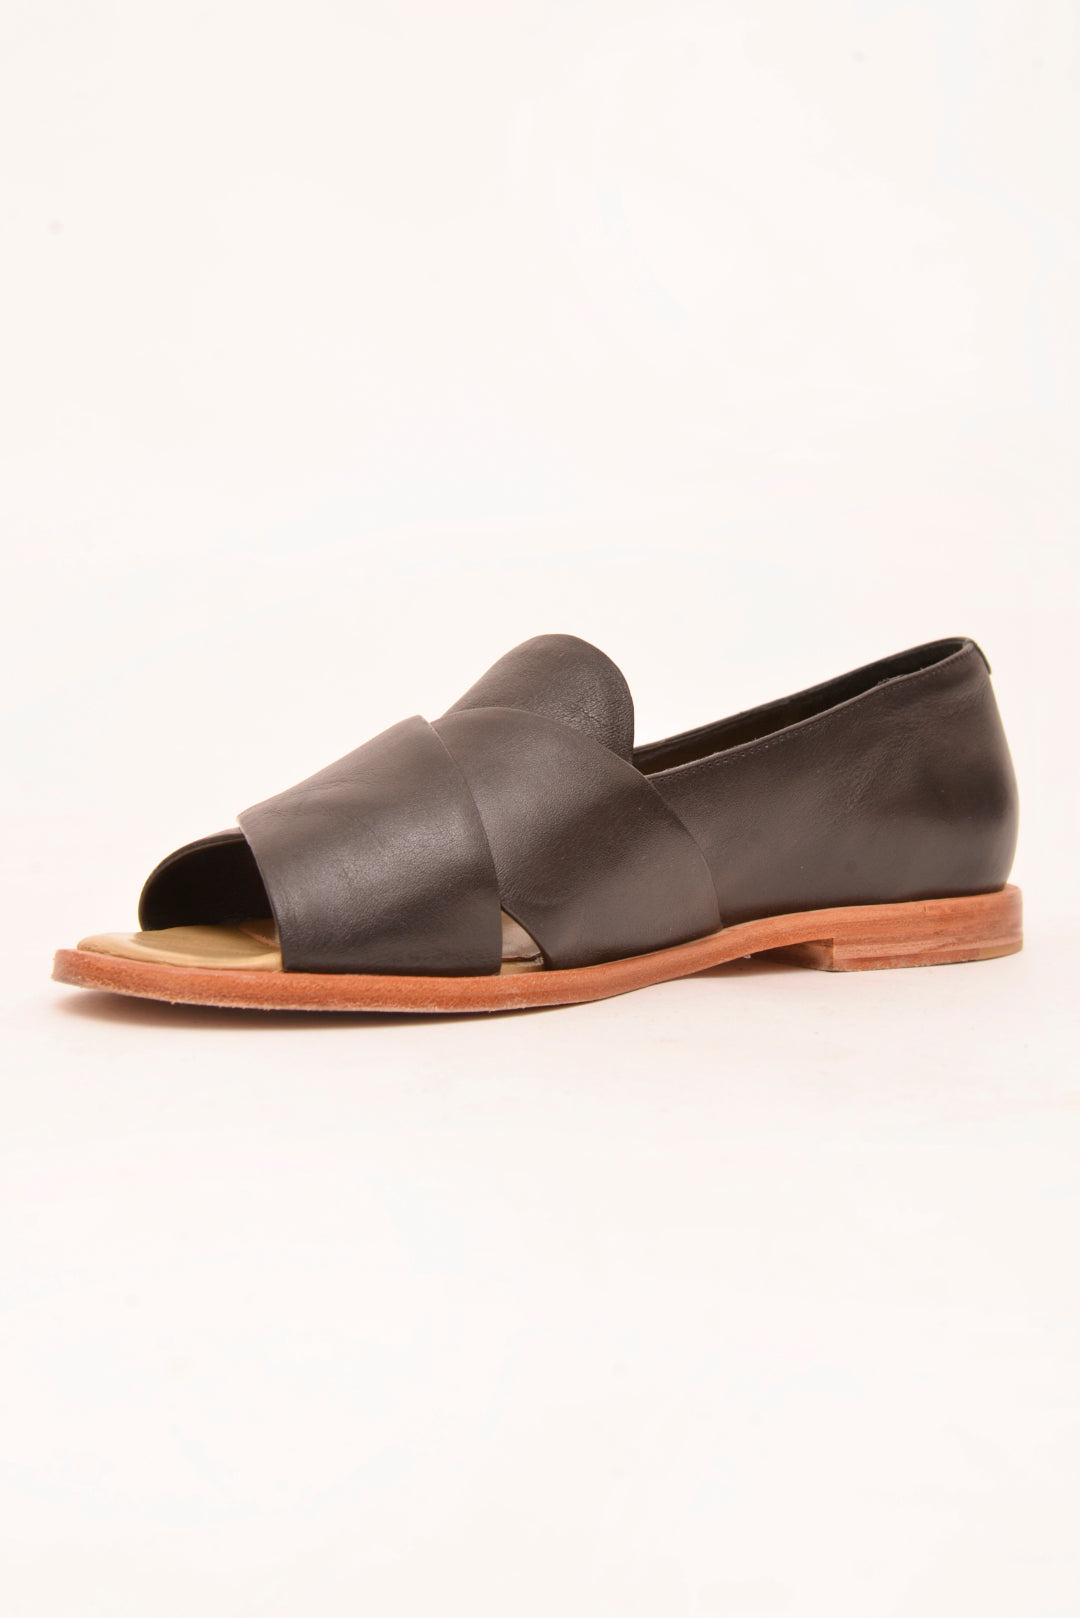 Zomp 'Nairobi' Leather Flats (37)